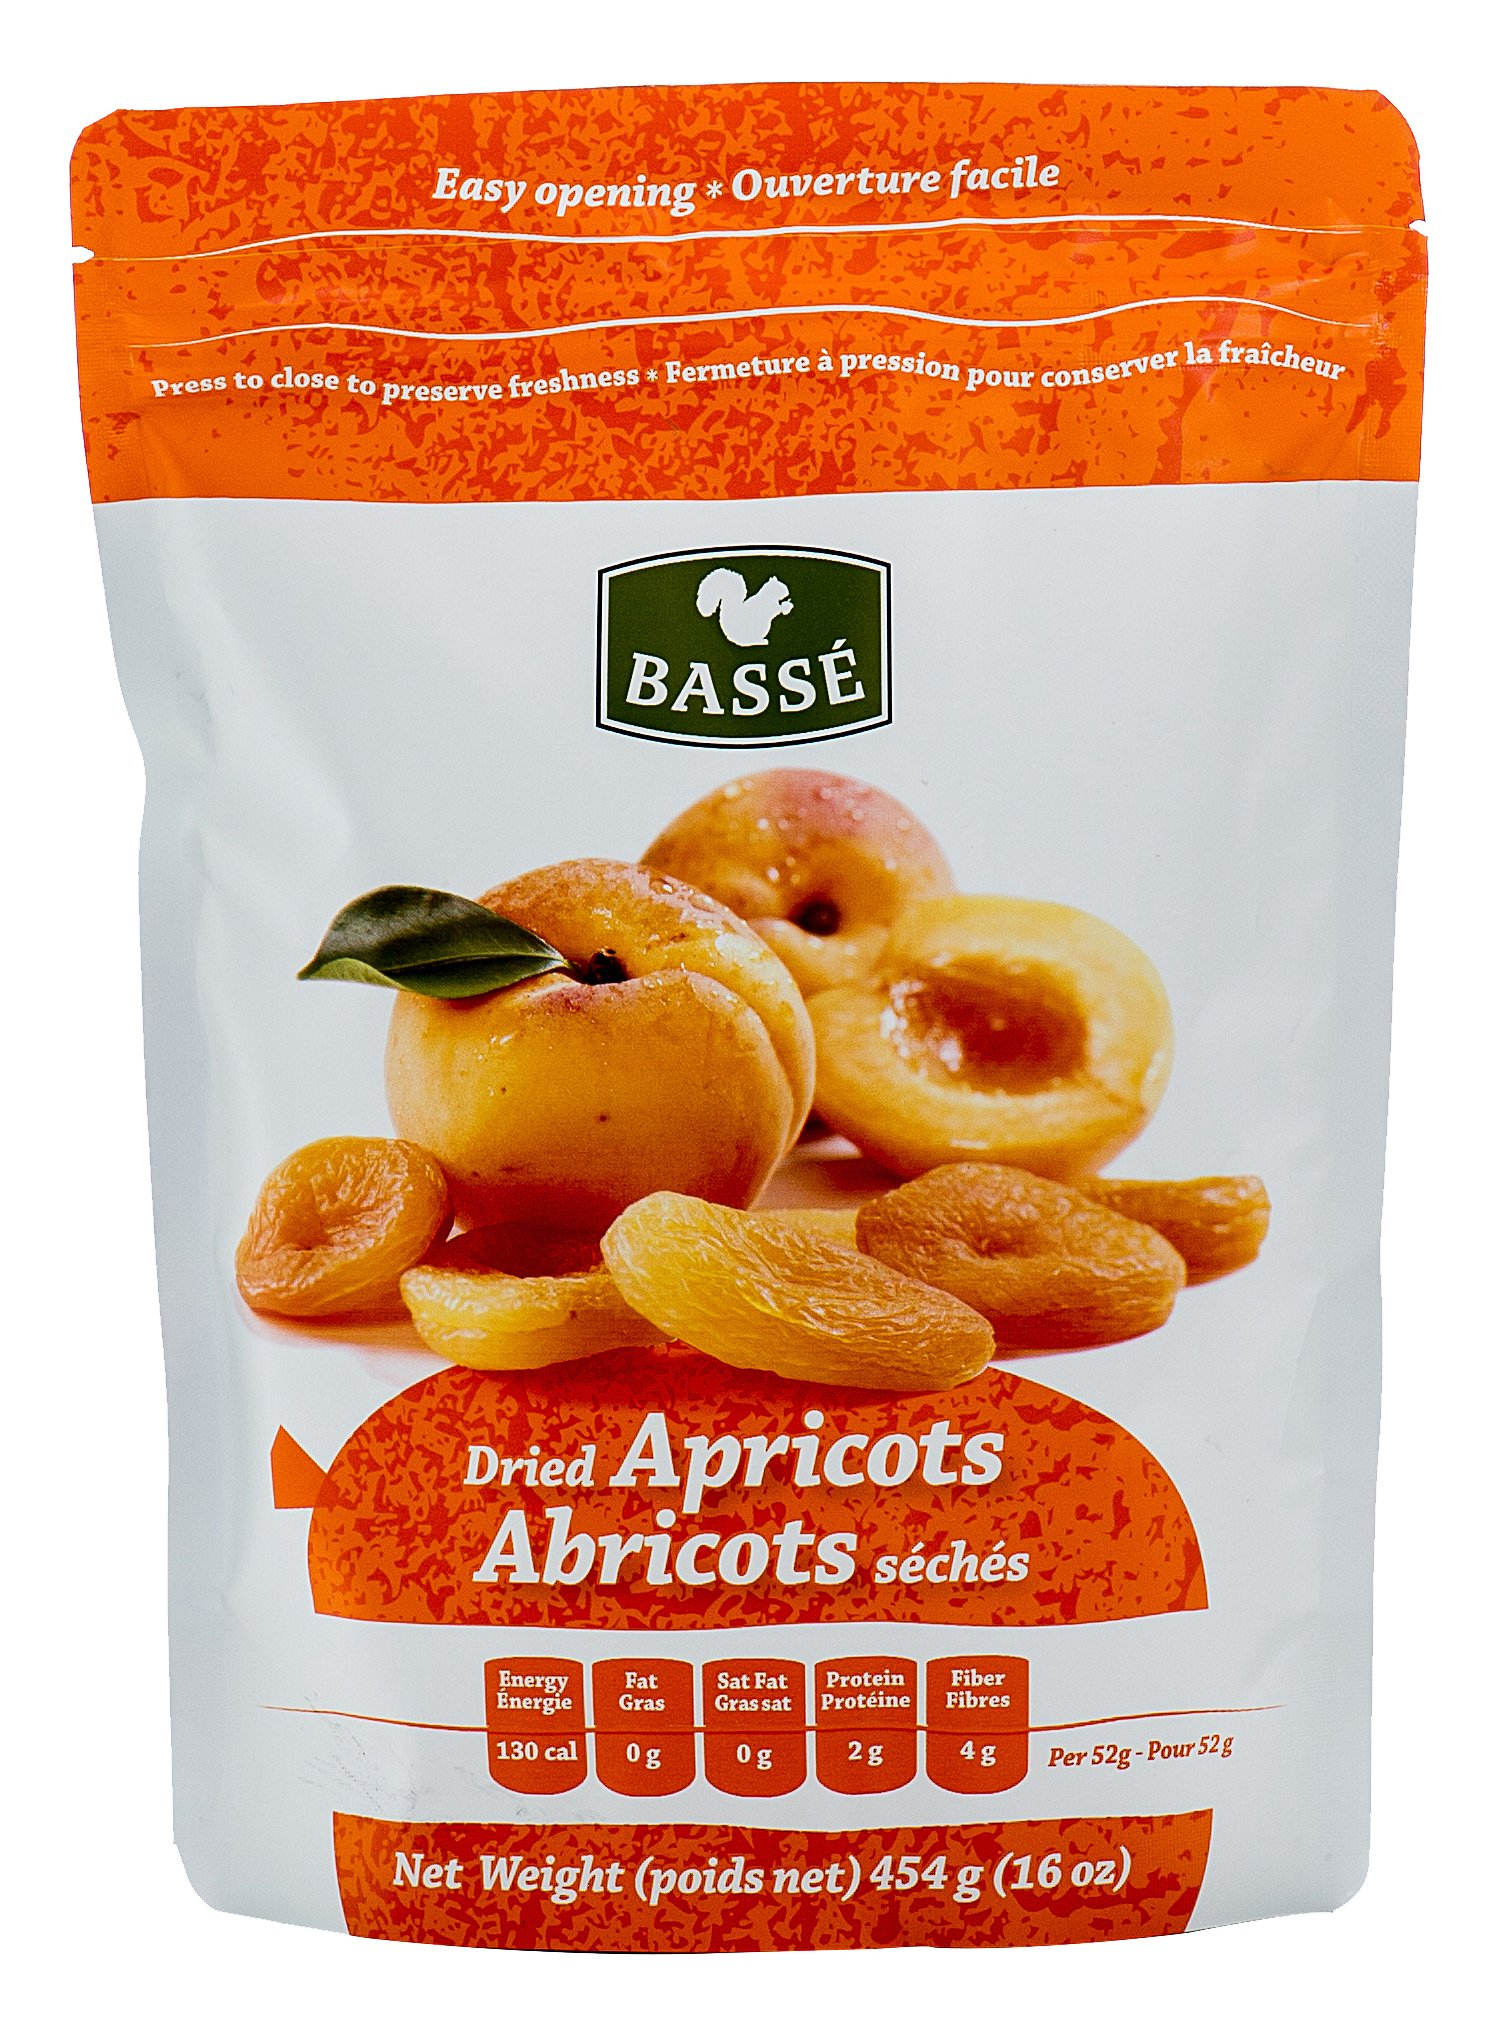 Dried Apricots, 1 Pound Bag from Basse Dried Fruits - 1lb Bag of Dried Apricots, Great Healthy Snack (1 Pound Bag)